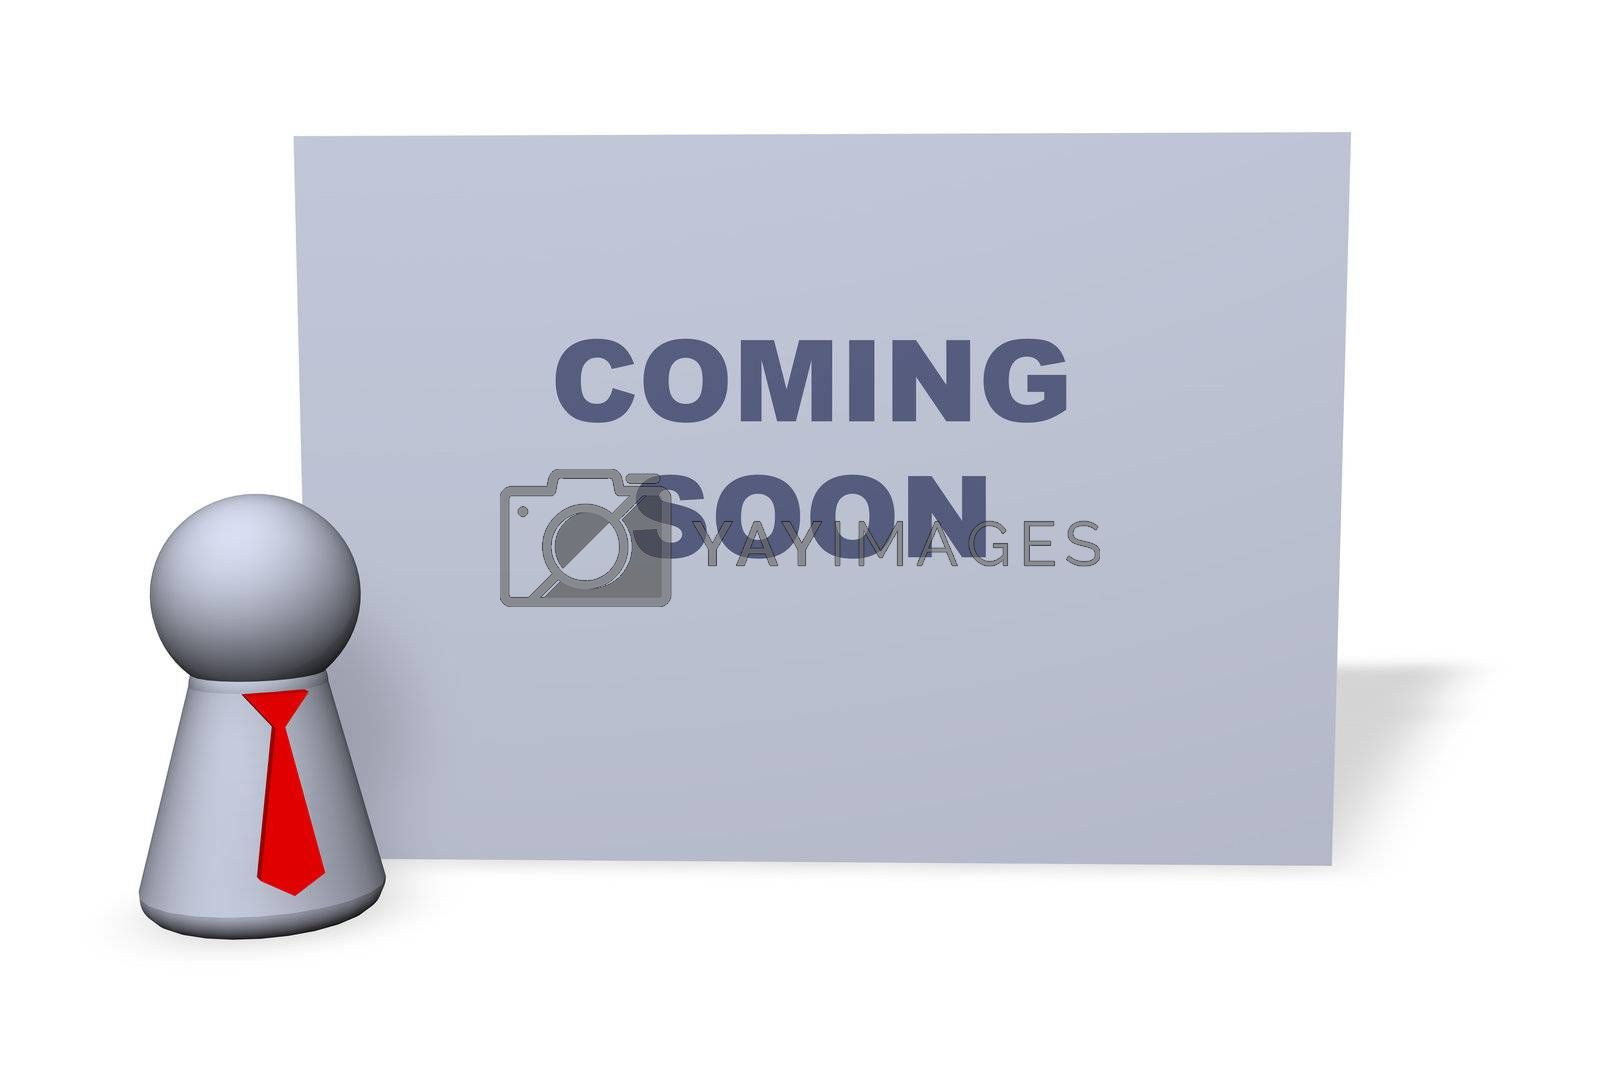 play figure with red tie and sign with coming soon text